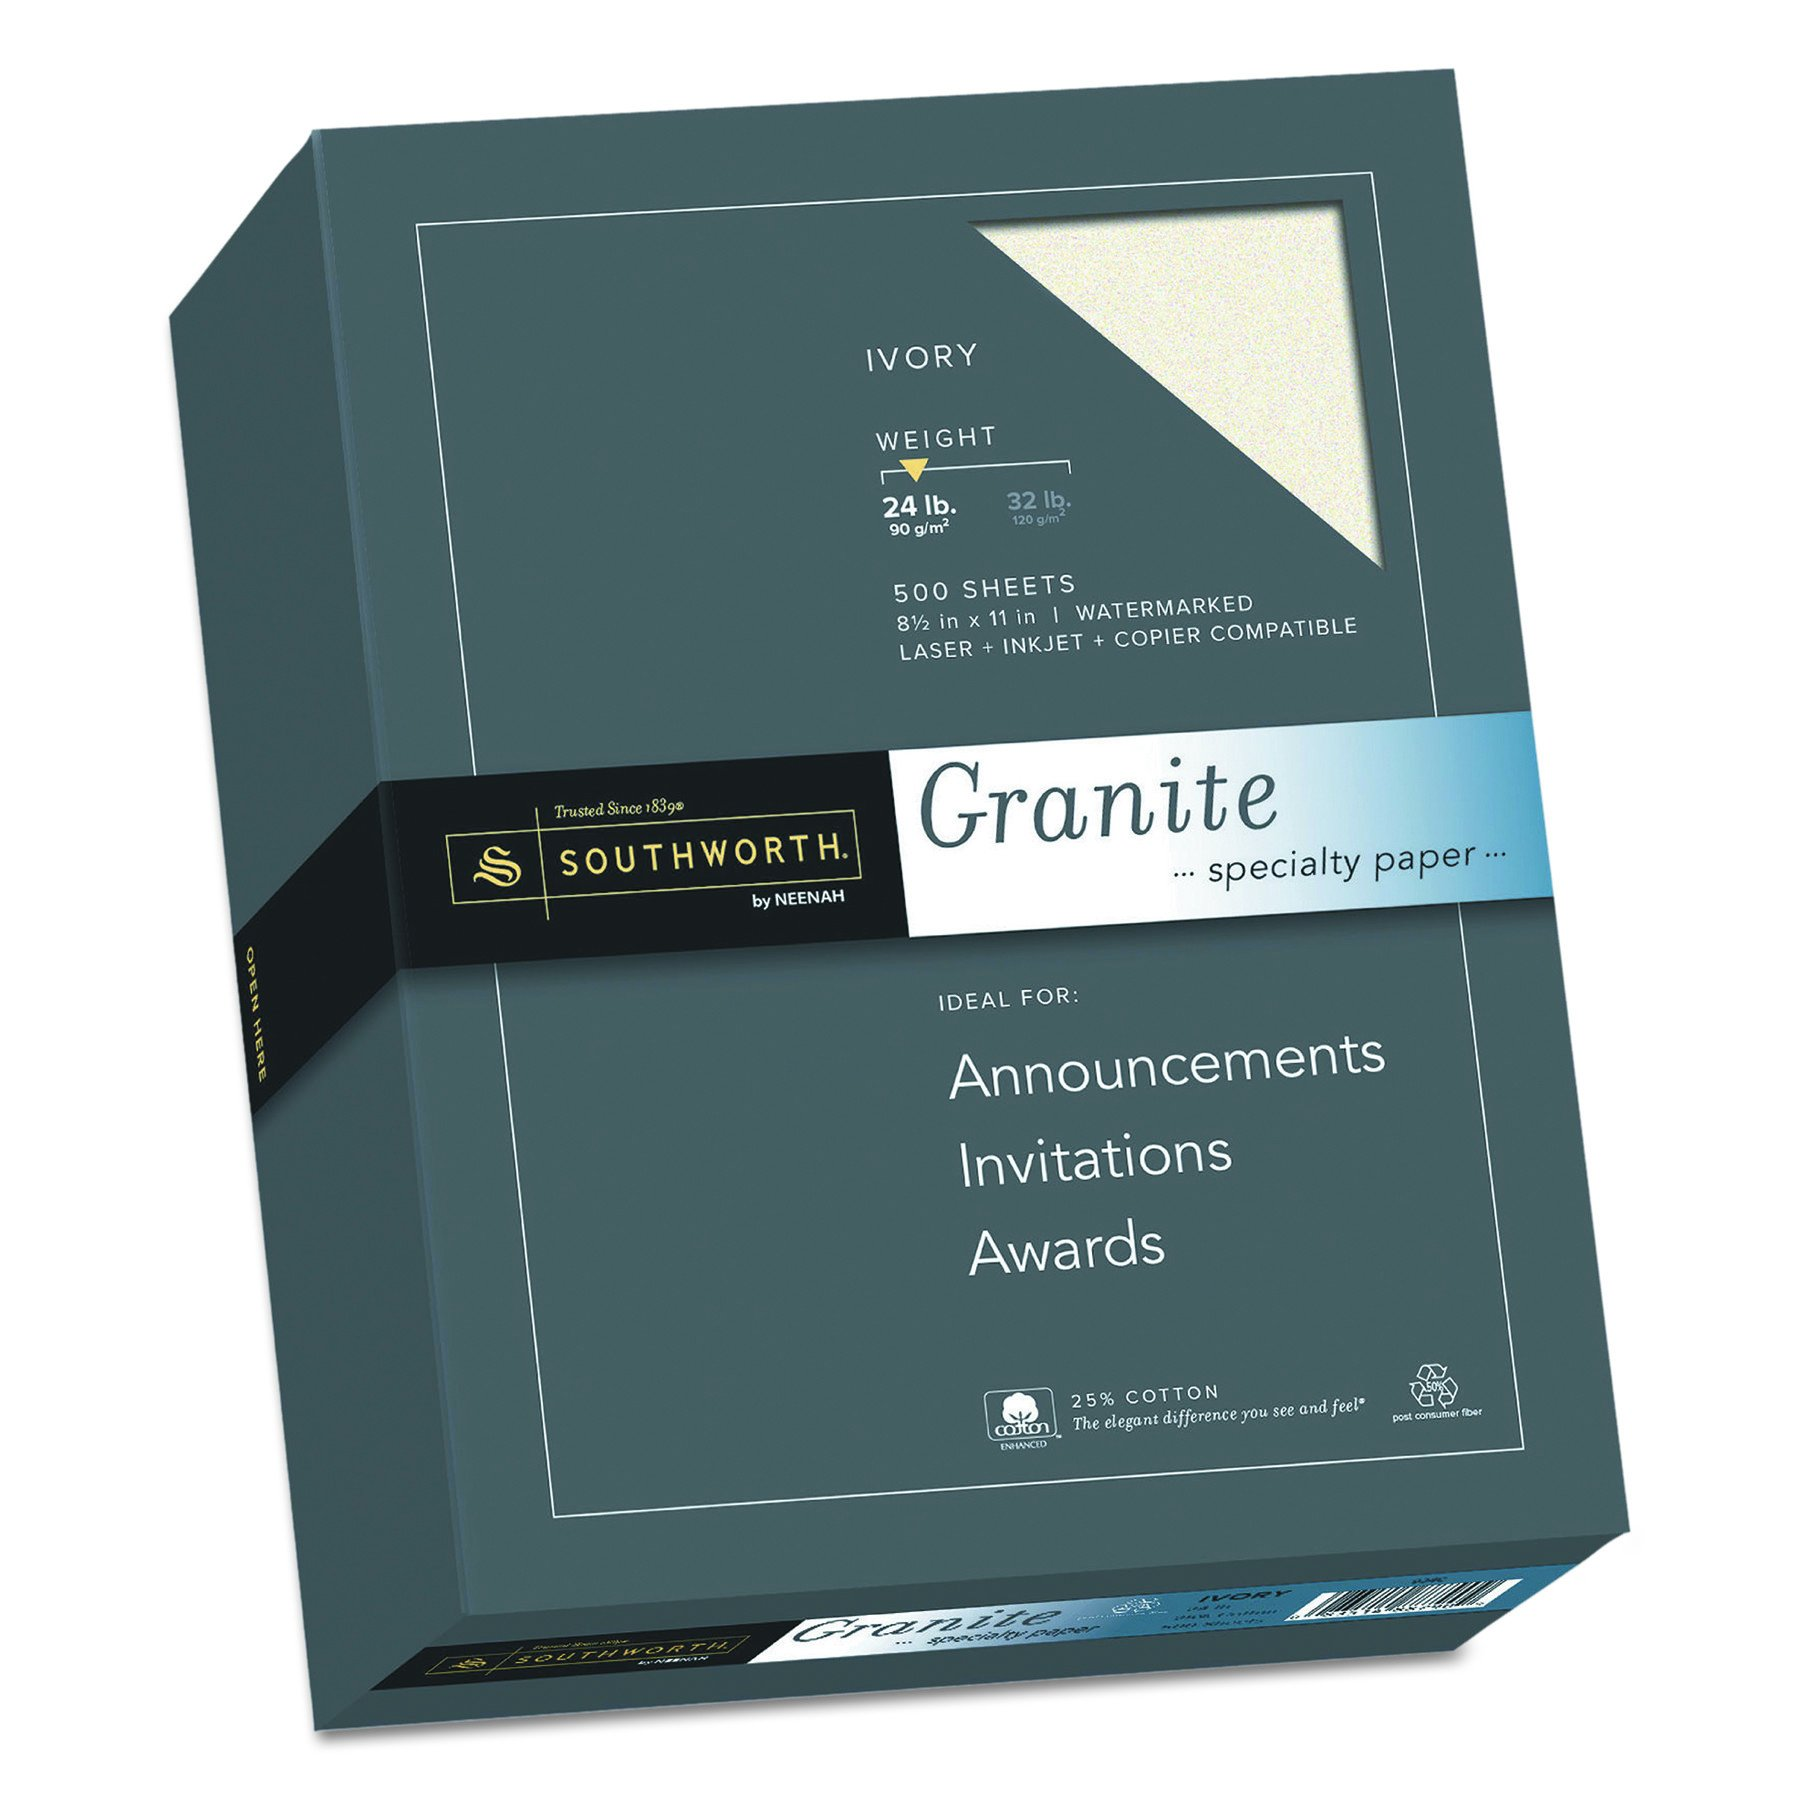 Southworth Granite Specilalty Paper, 8.5 x 11 inches,24 lb, Ivory, 500 Sheets per Box (934C)